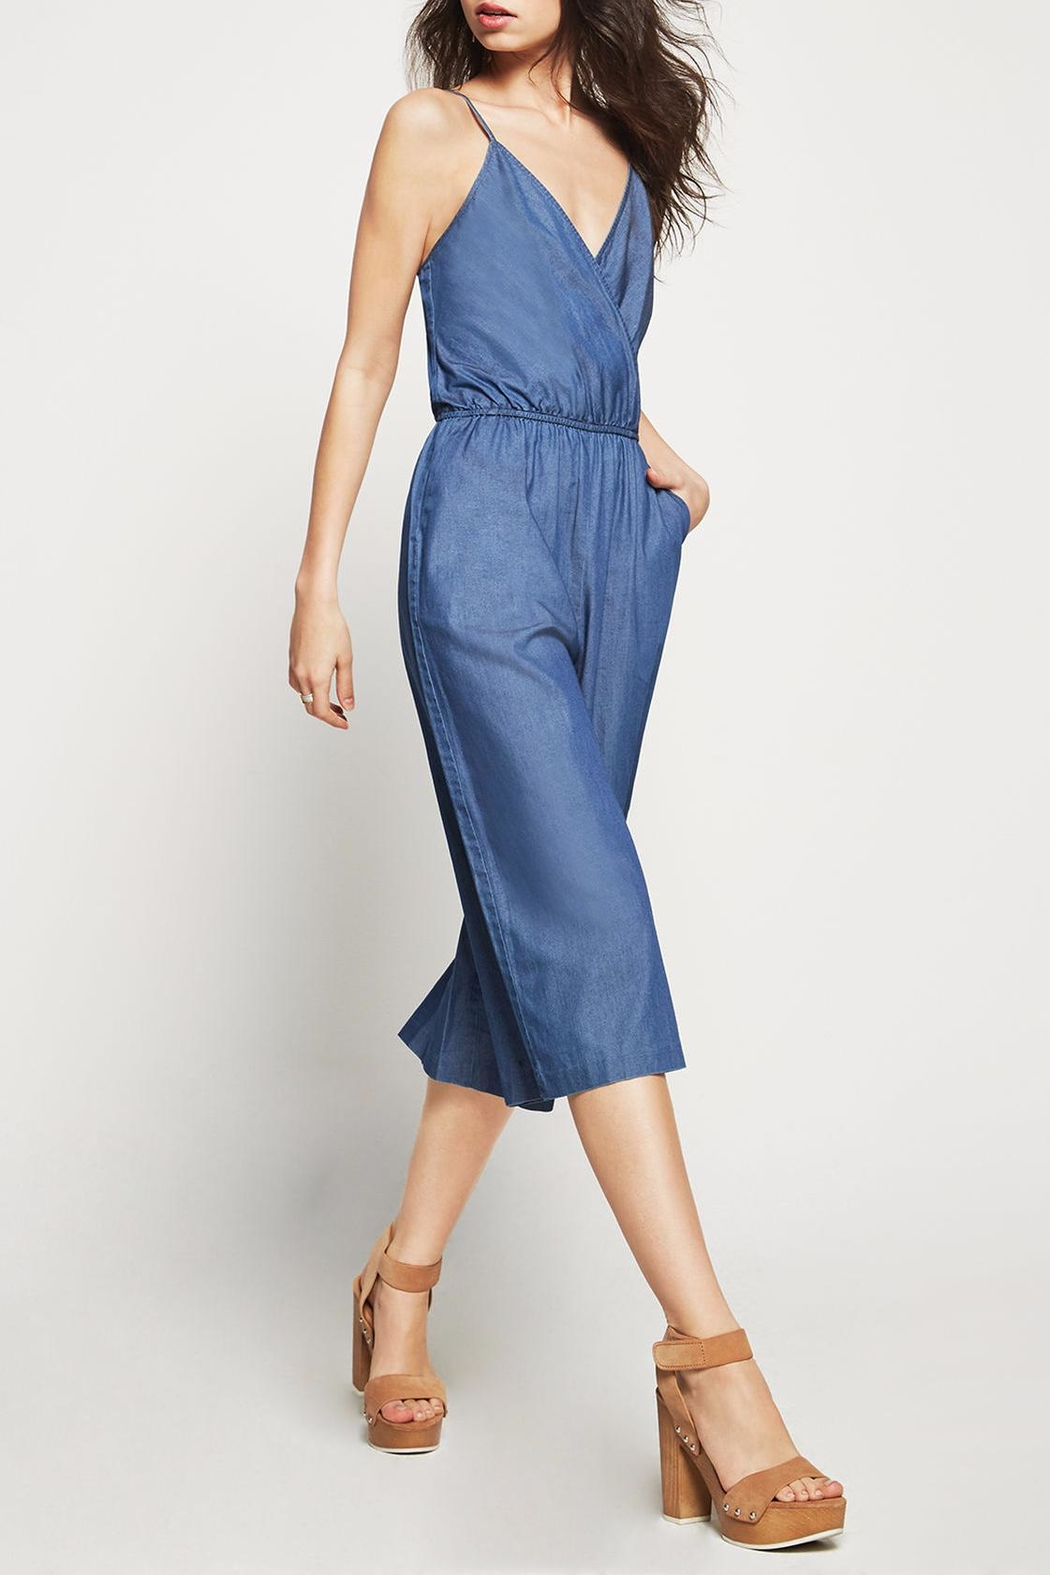 af87602732d7 BCBGeneration Denim Culotte Jumpsuit from Statesboro by Sole ...